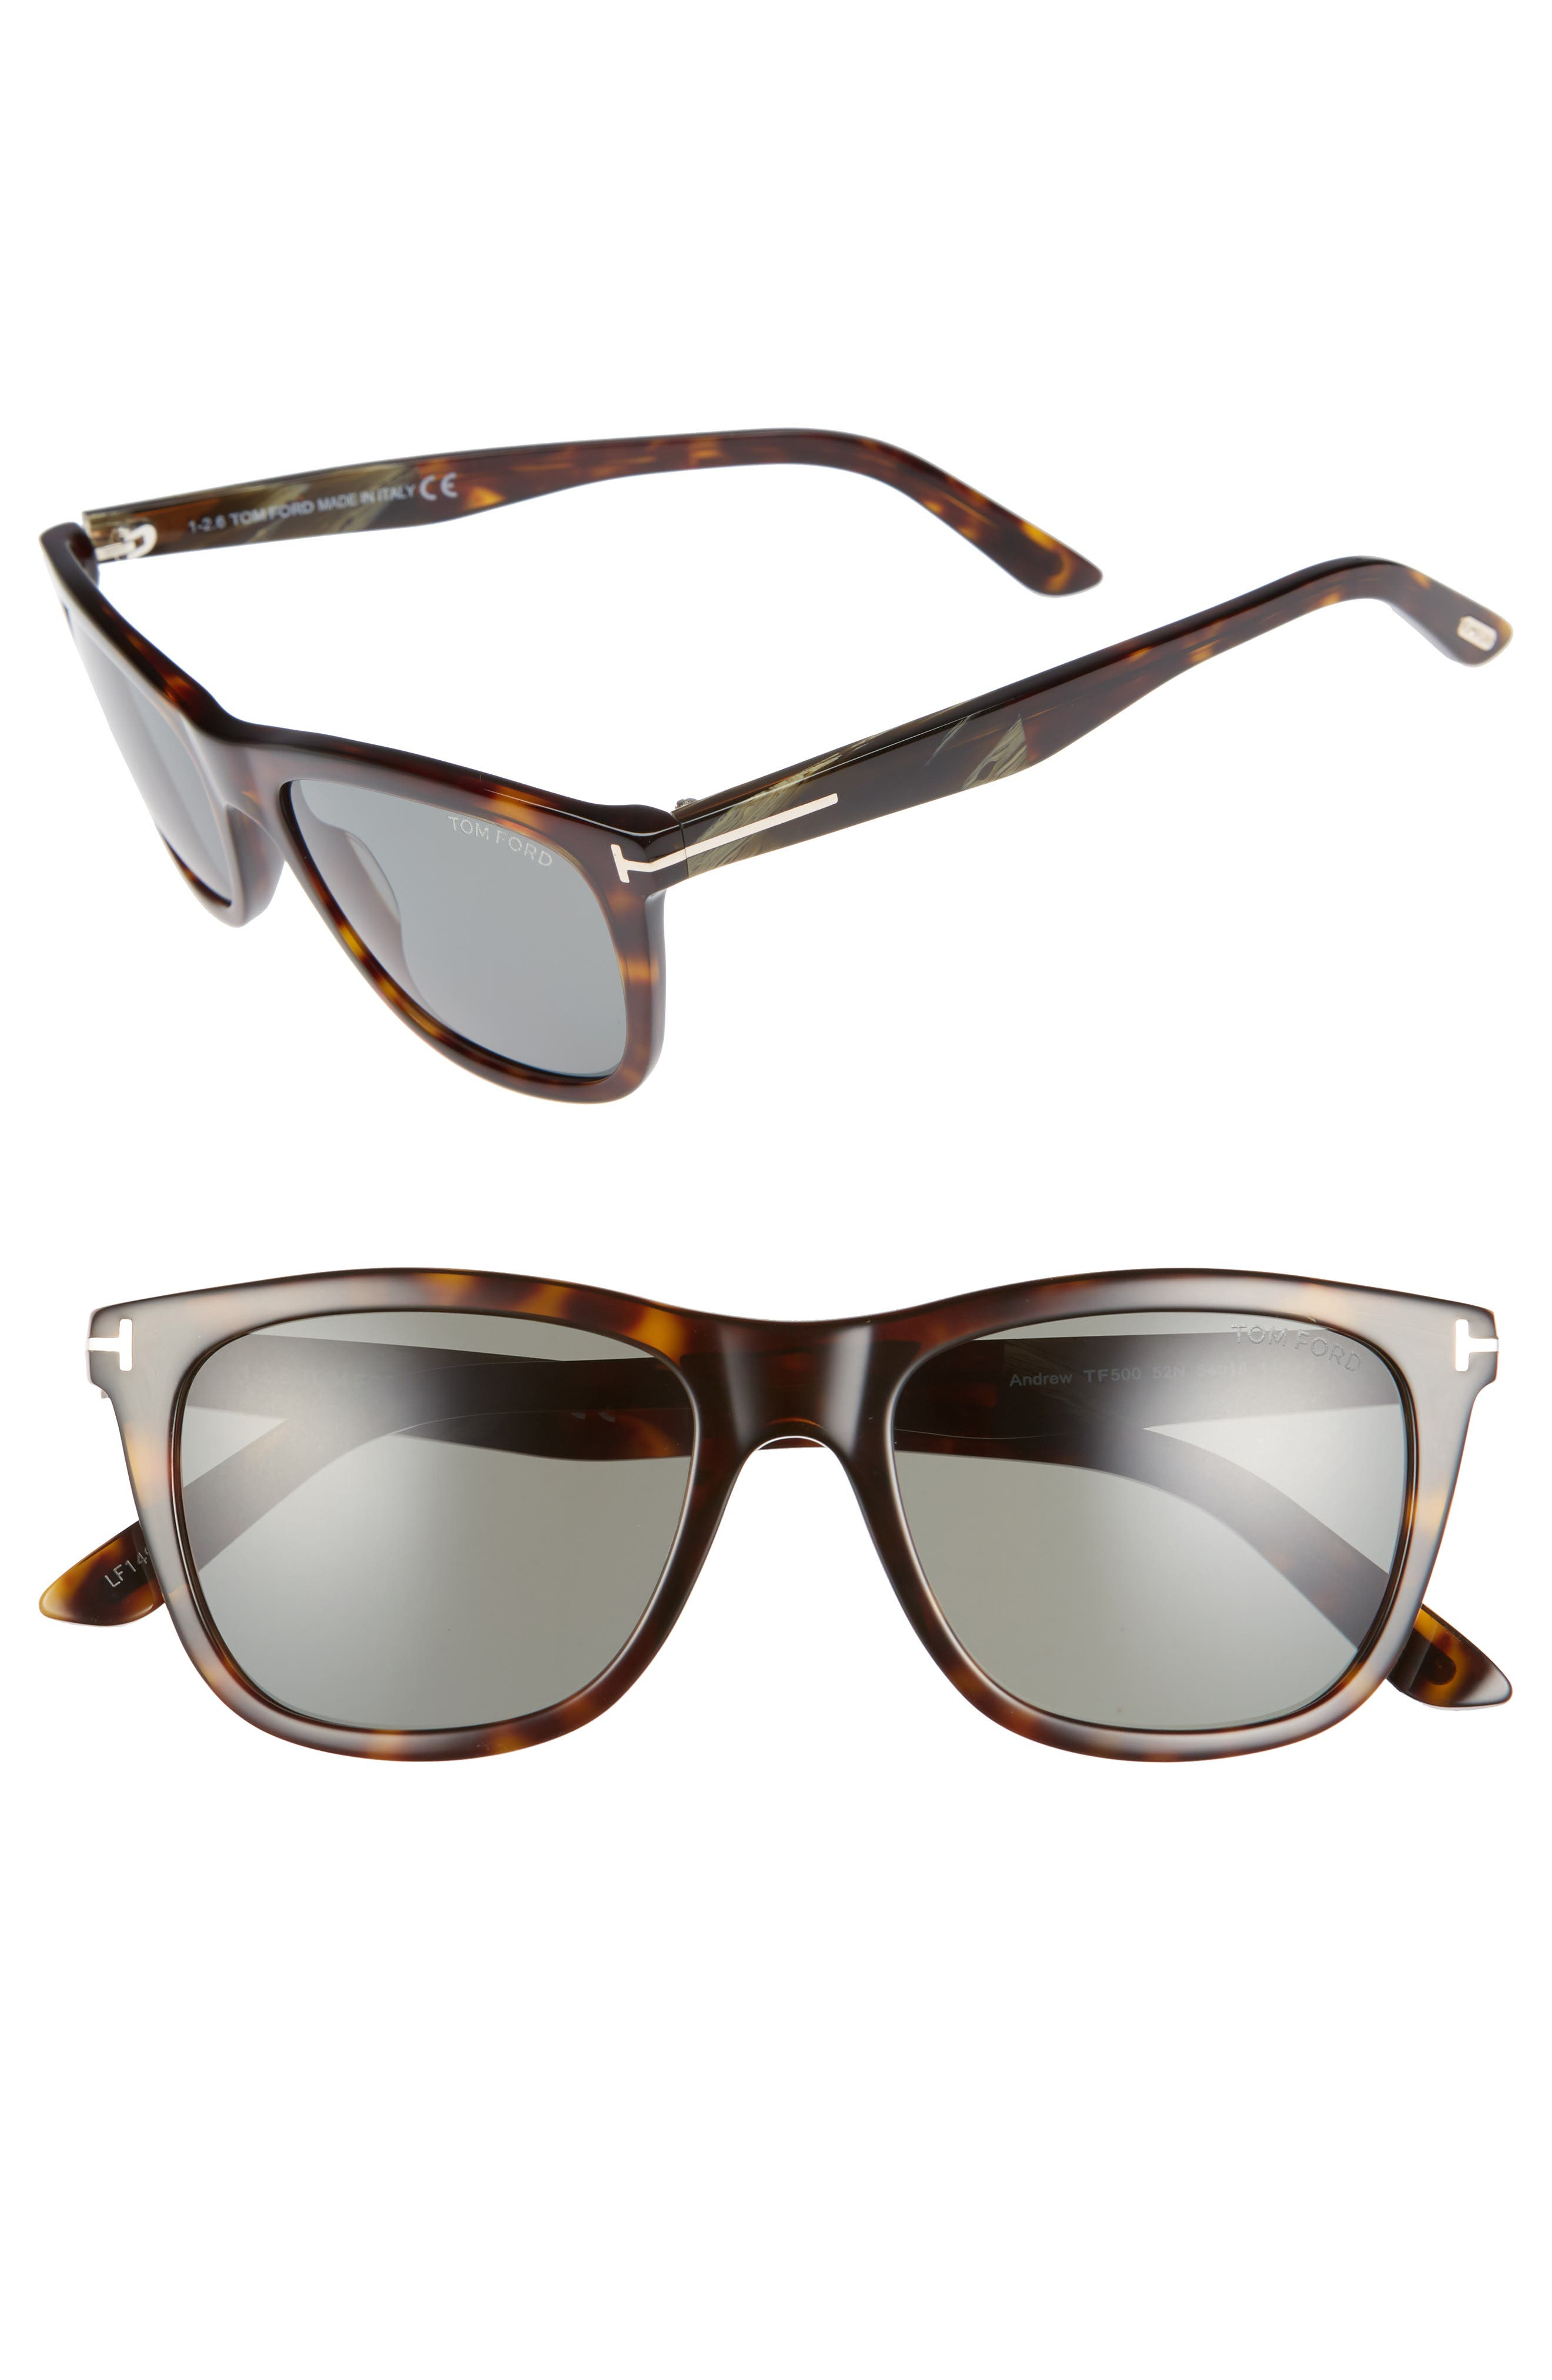 Main Image - Tom Ford Andrew 54mm Polarized Sunglasses